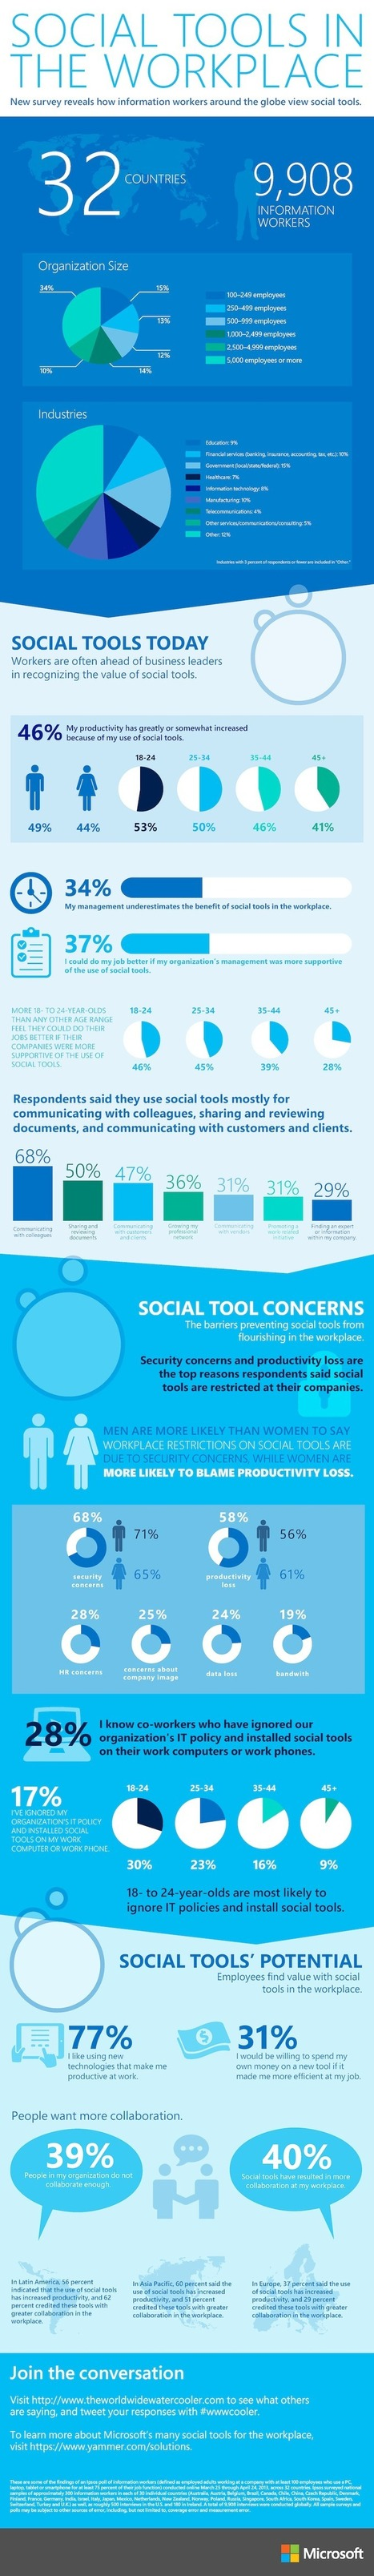 Social Tools in the Workplace: a Microsoft survey   SOCIALFAVE - Complete #SMM platform to organize, discover, increase, engage and save time the smartest way. #TOP10 #Twitter platforms   Scoop.it